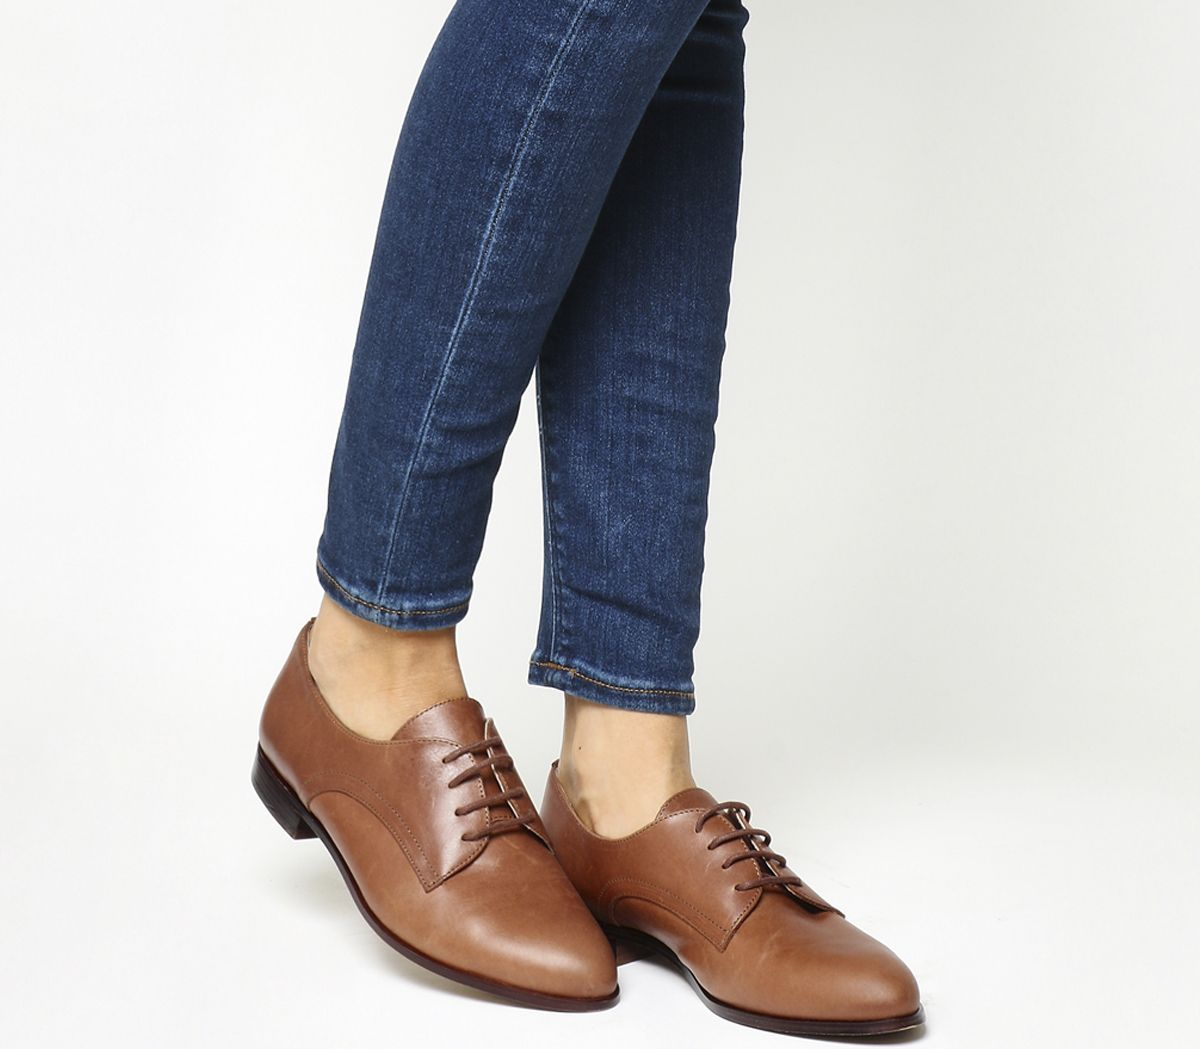 5f05b0c796e67 Office Reach Softy Lace Up Brogues Tan Leather - Flats